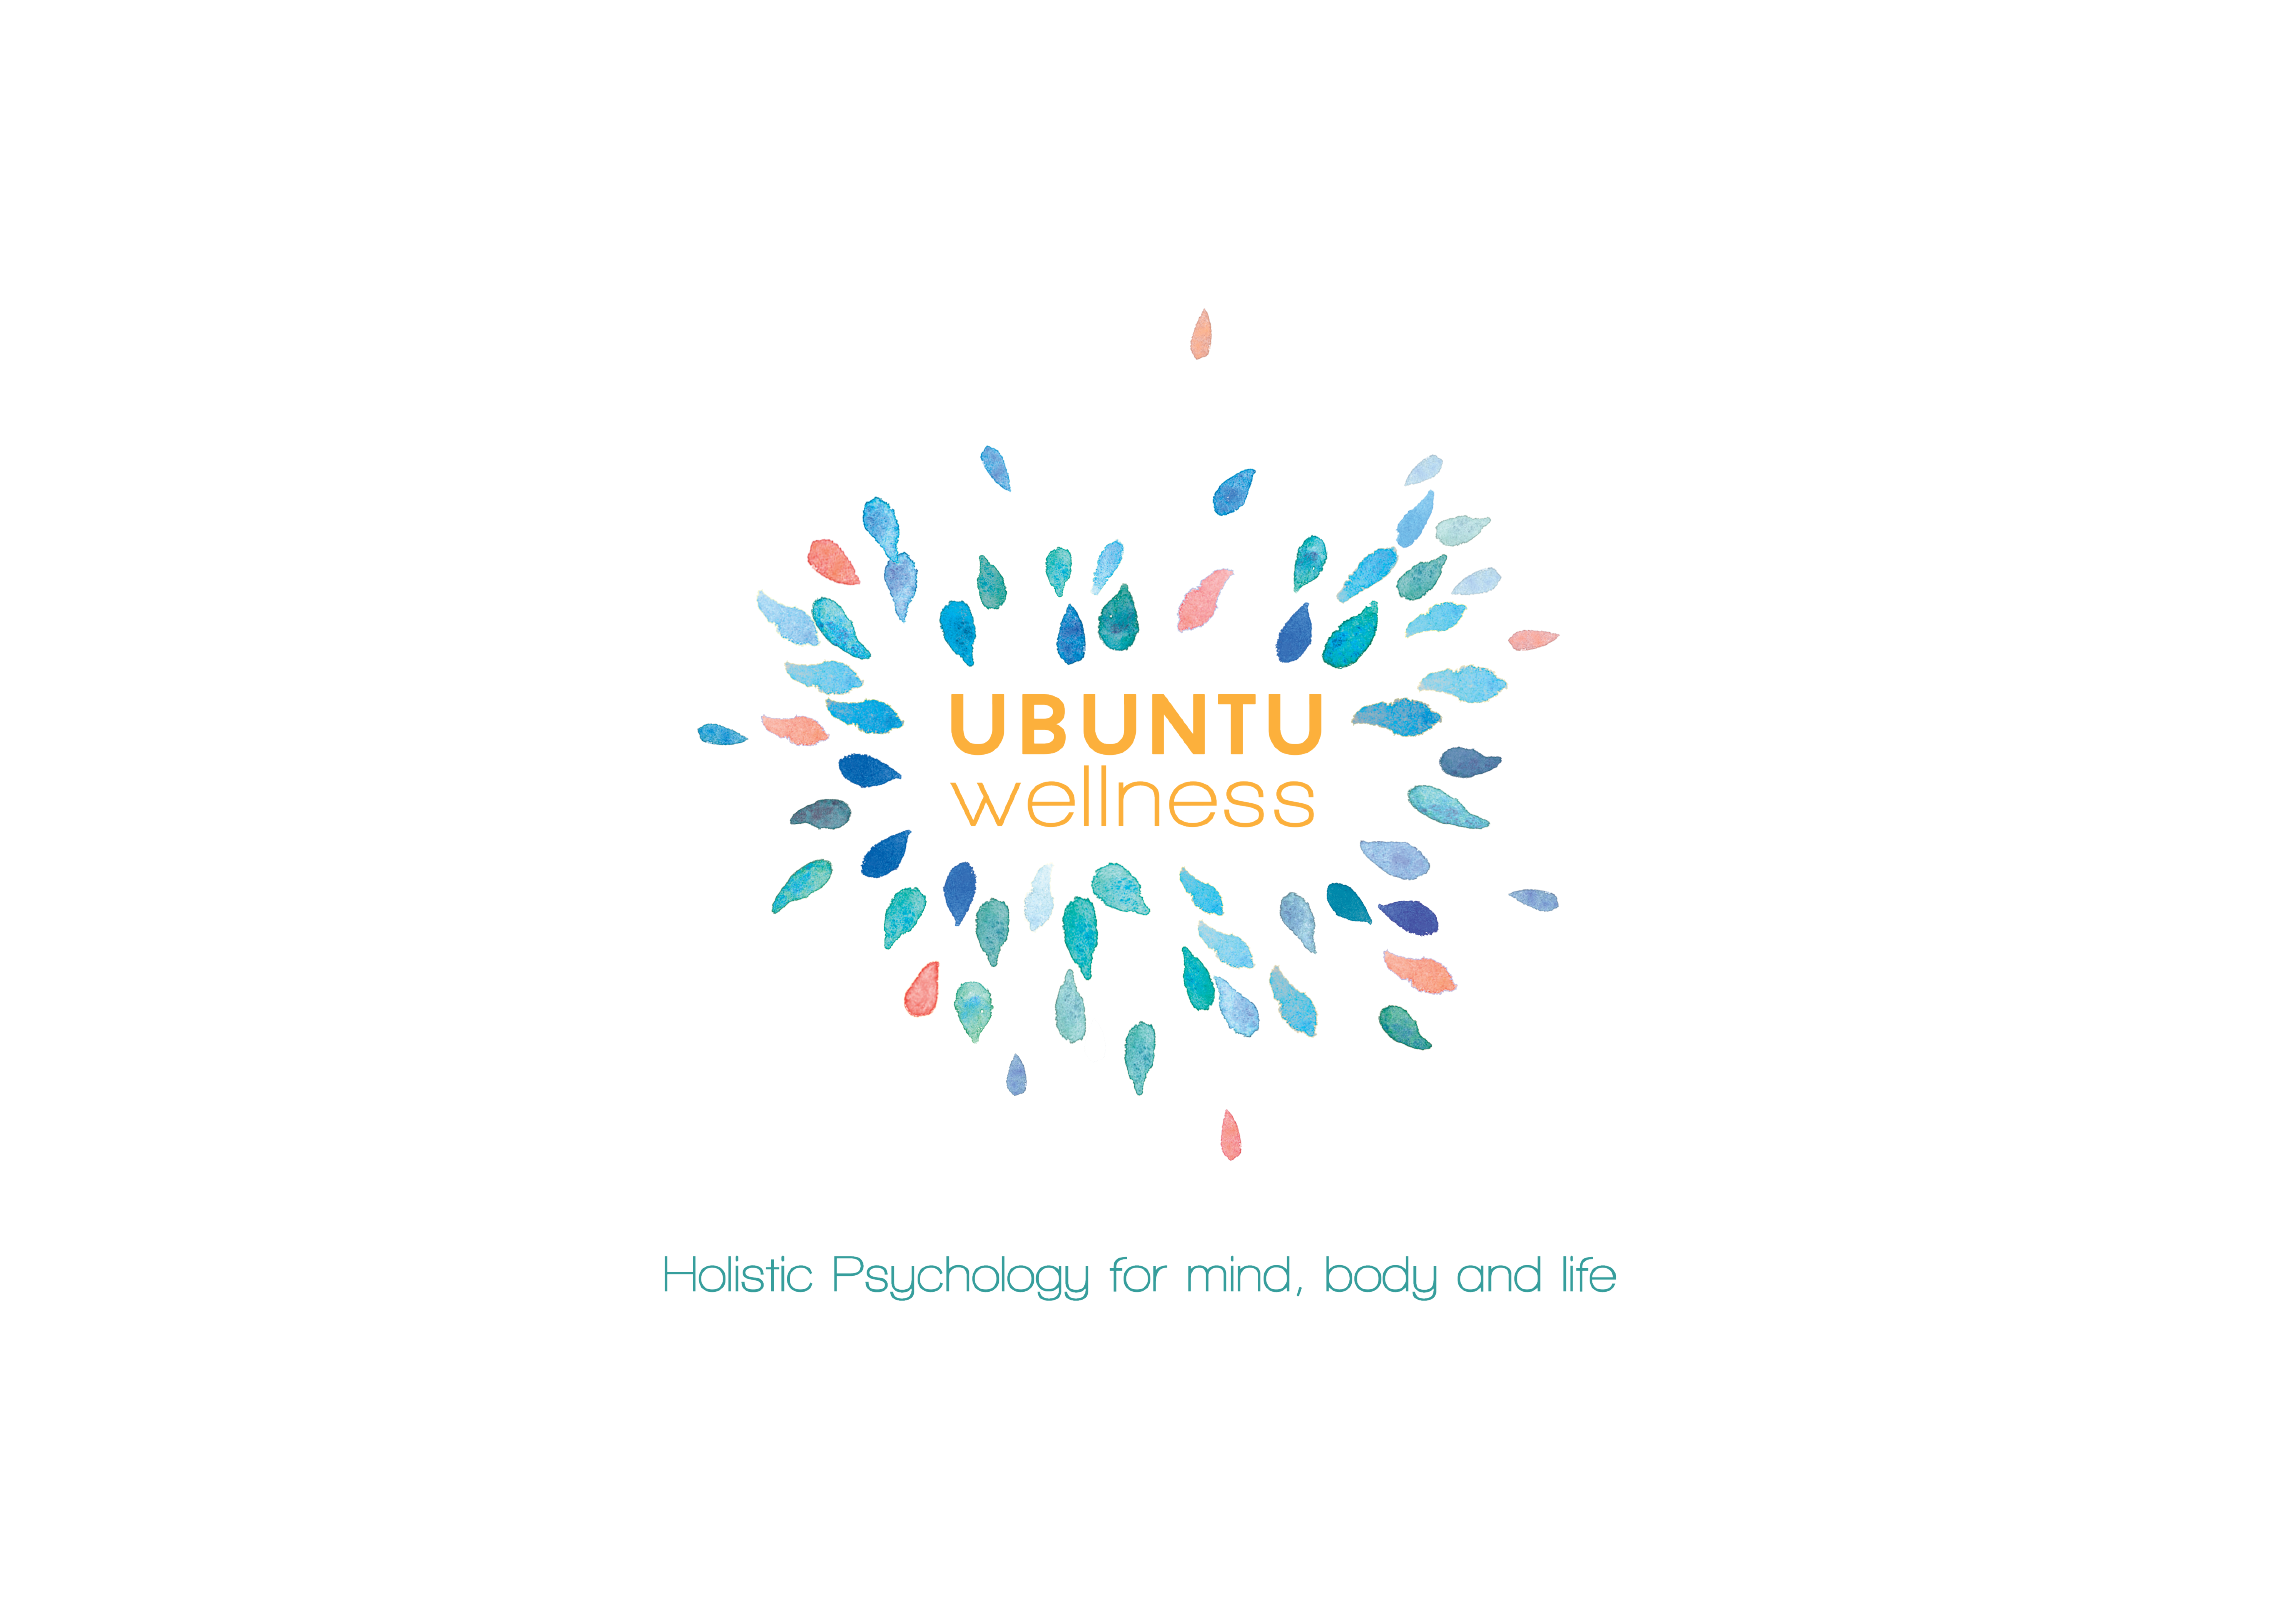 Ubuntu Wellness by Rising Creative